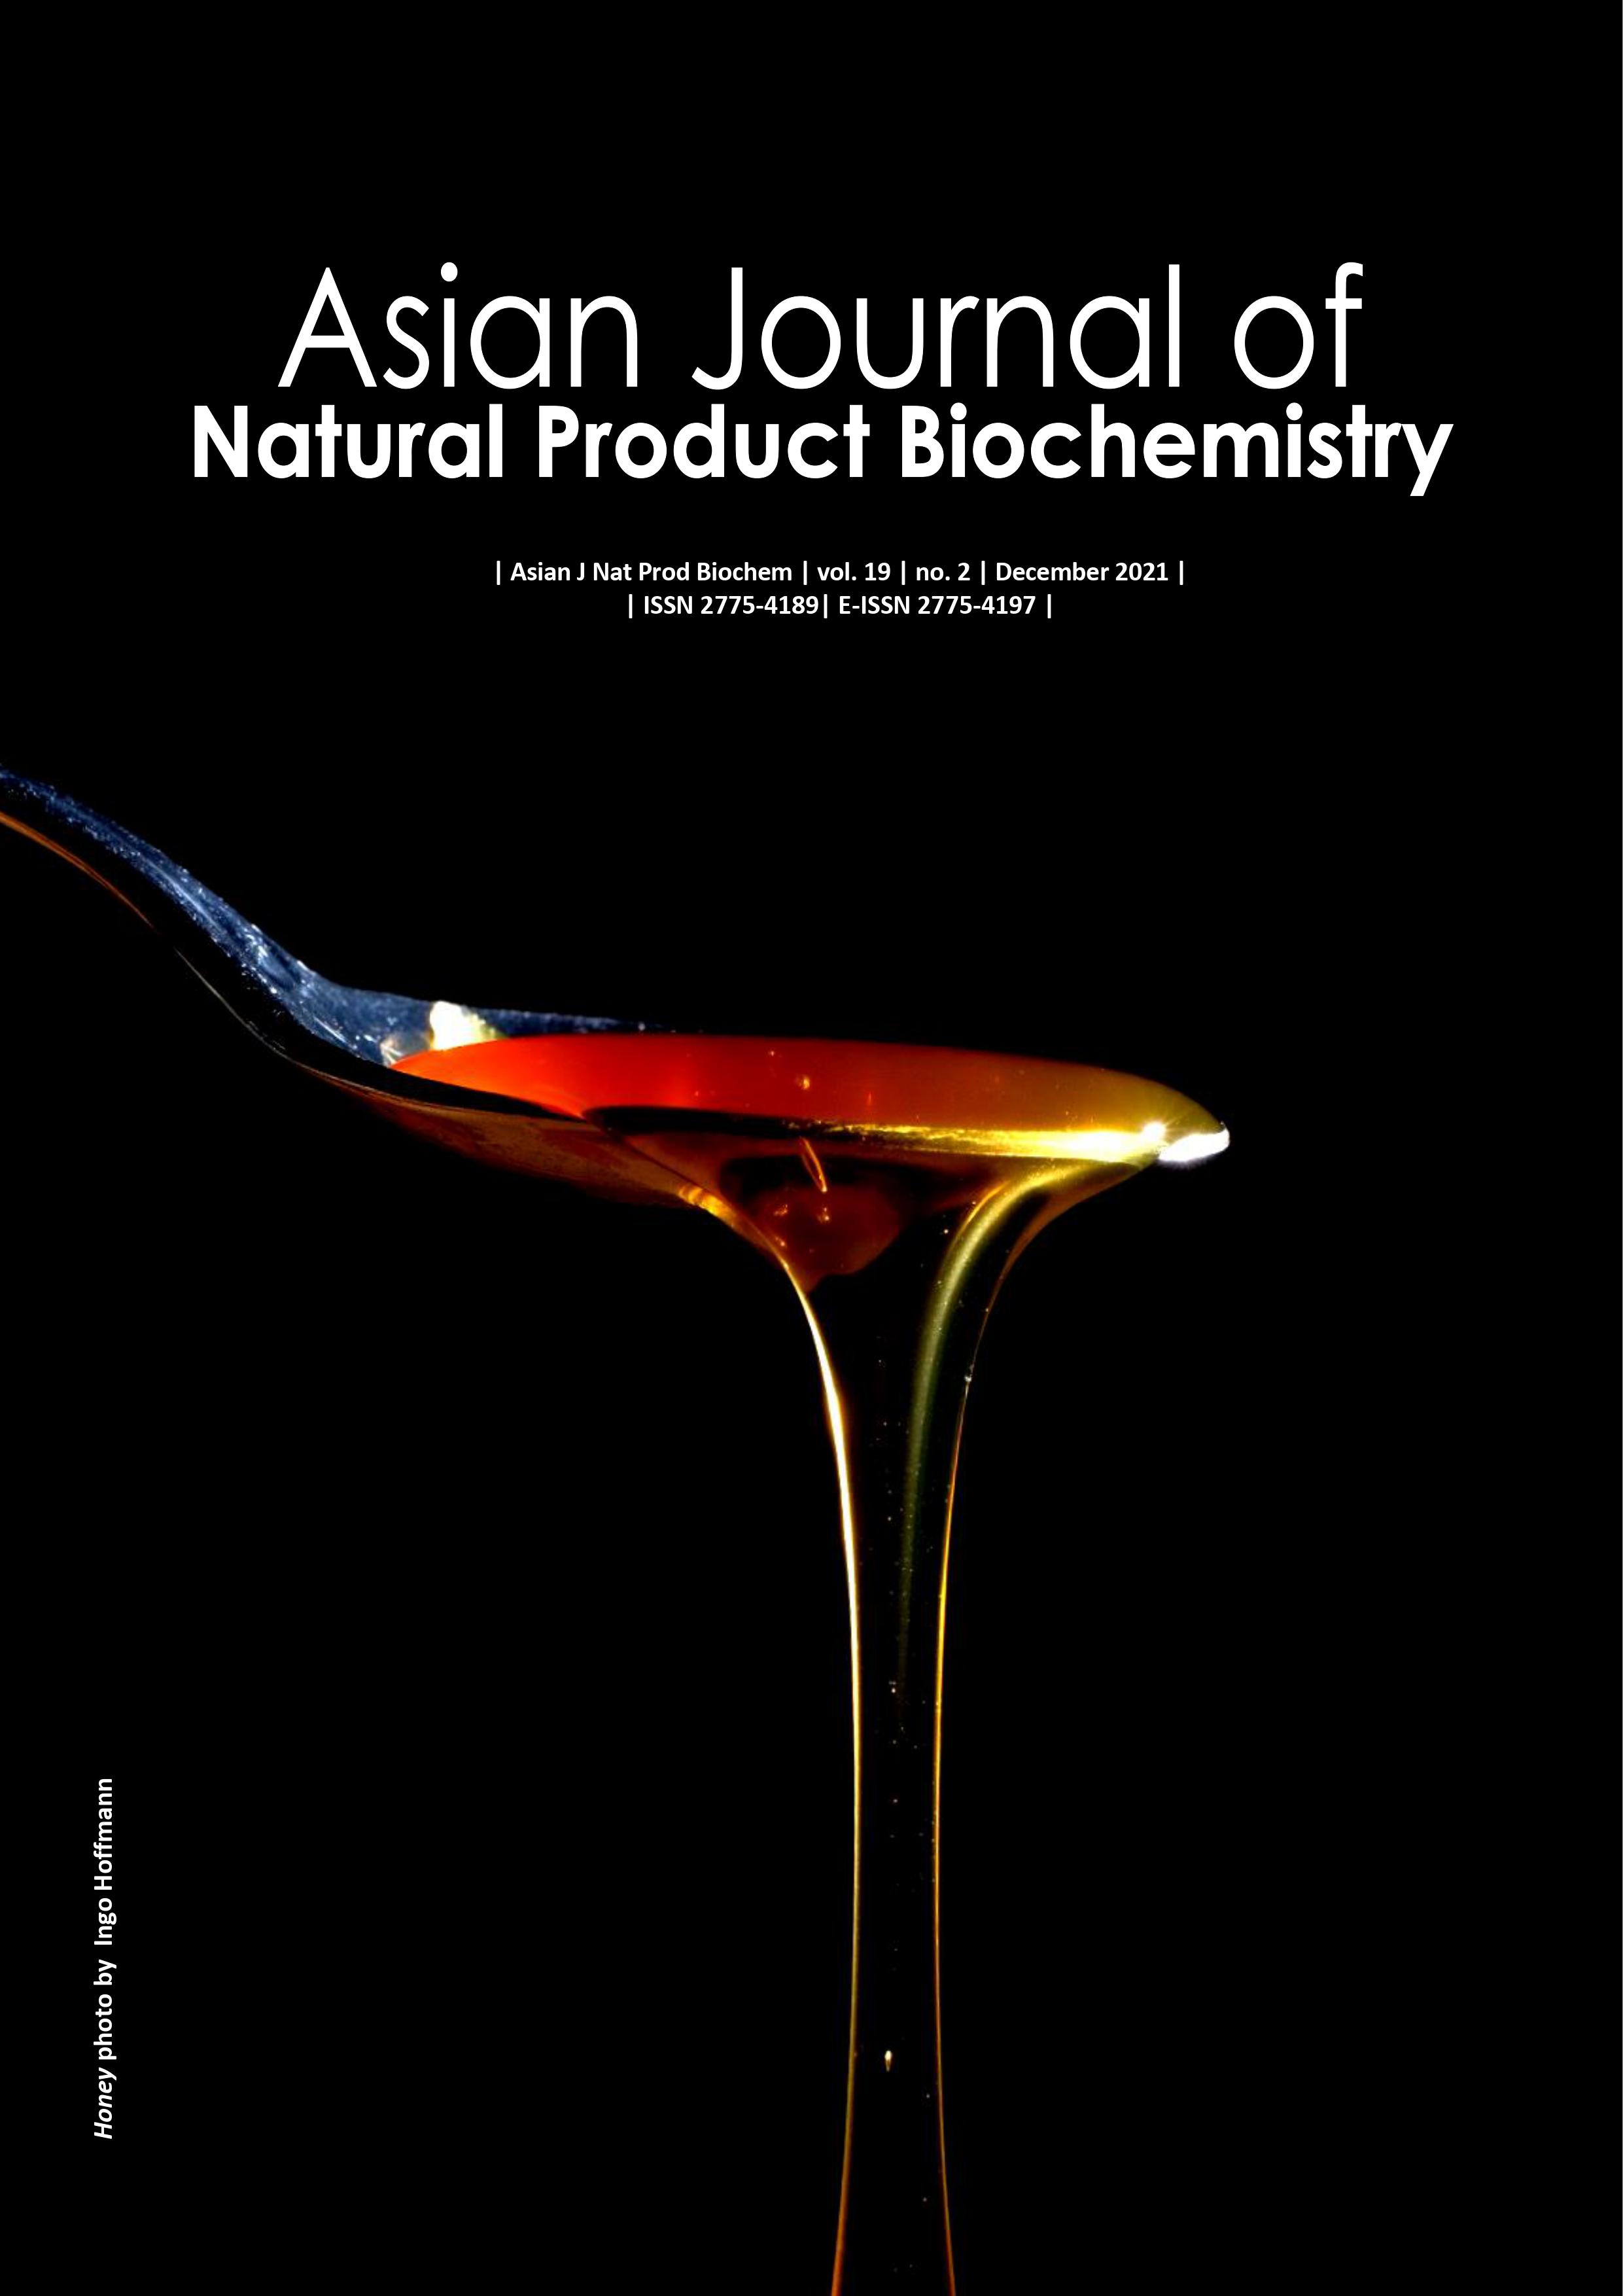 Asian Journal of Natural Product Biochemistry